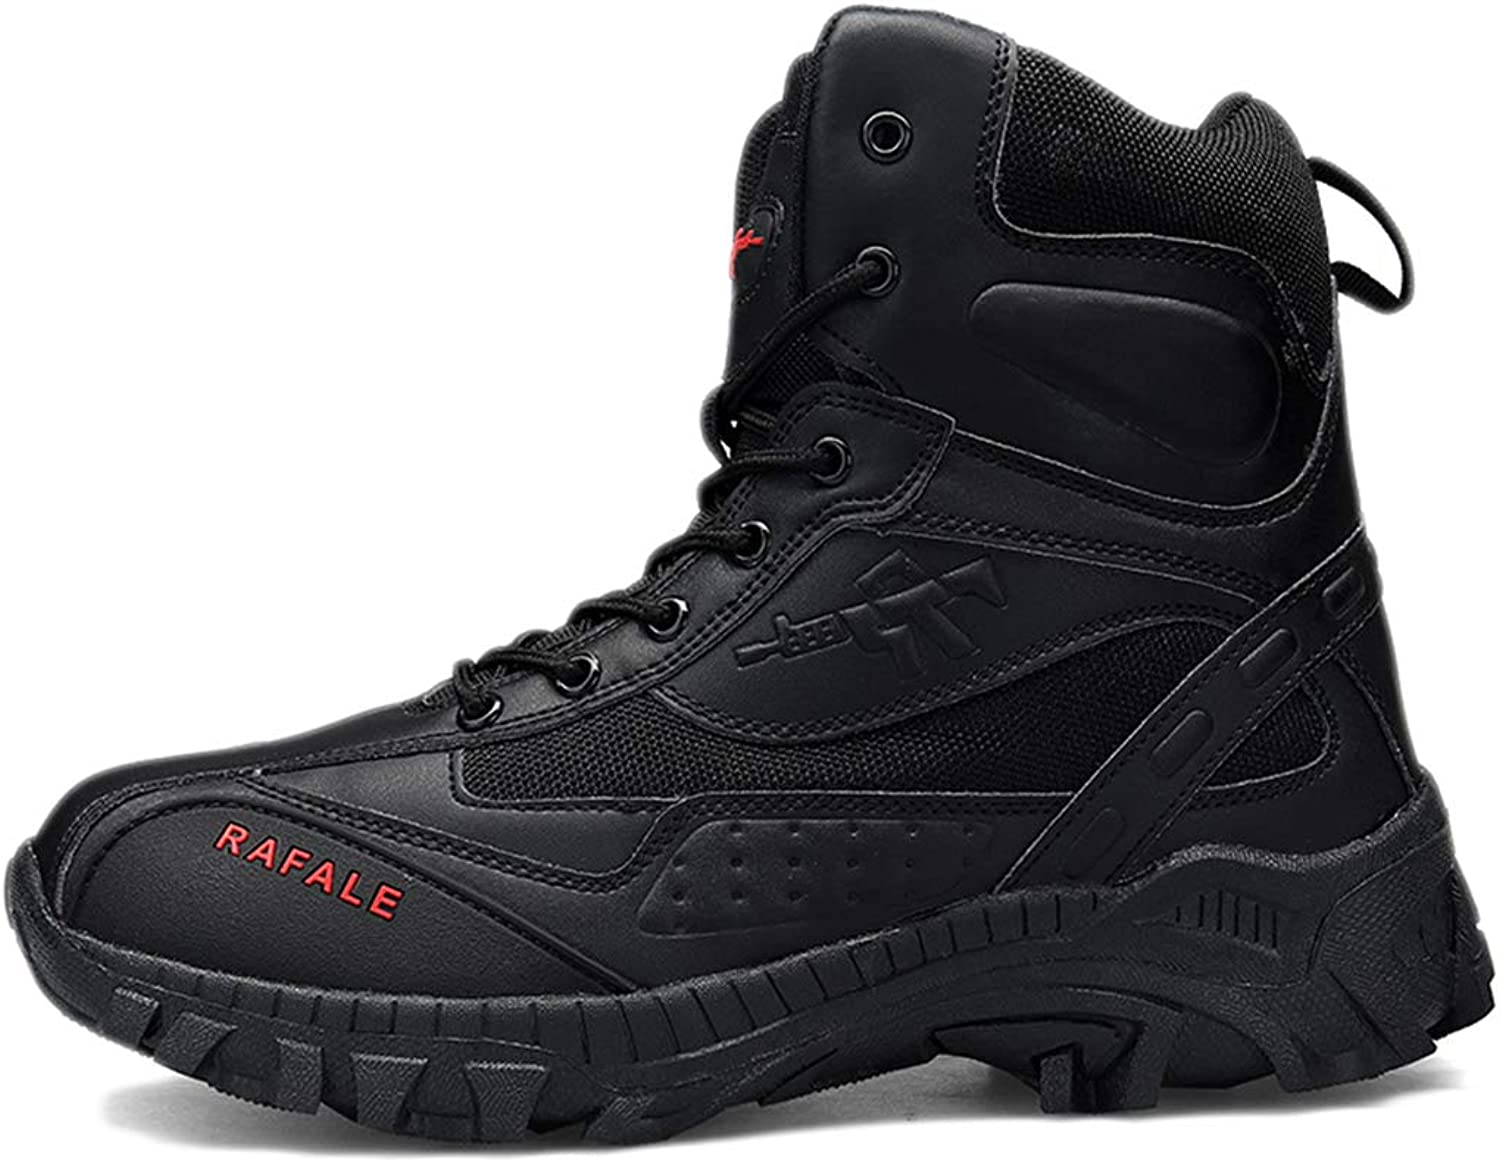 Tactical Boots Men Black Patrol Breathable Lightweight Autumn Winter high-top Outdoor Combat Boots wear-Resistant Military Boots Non-Slip